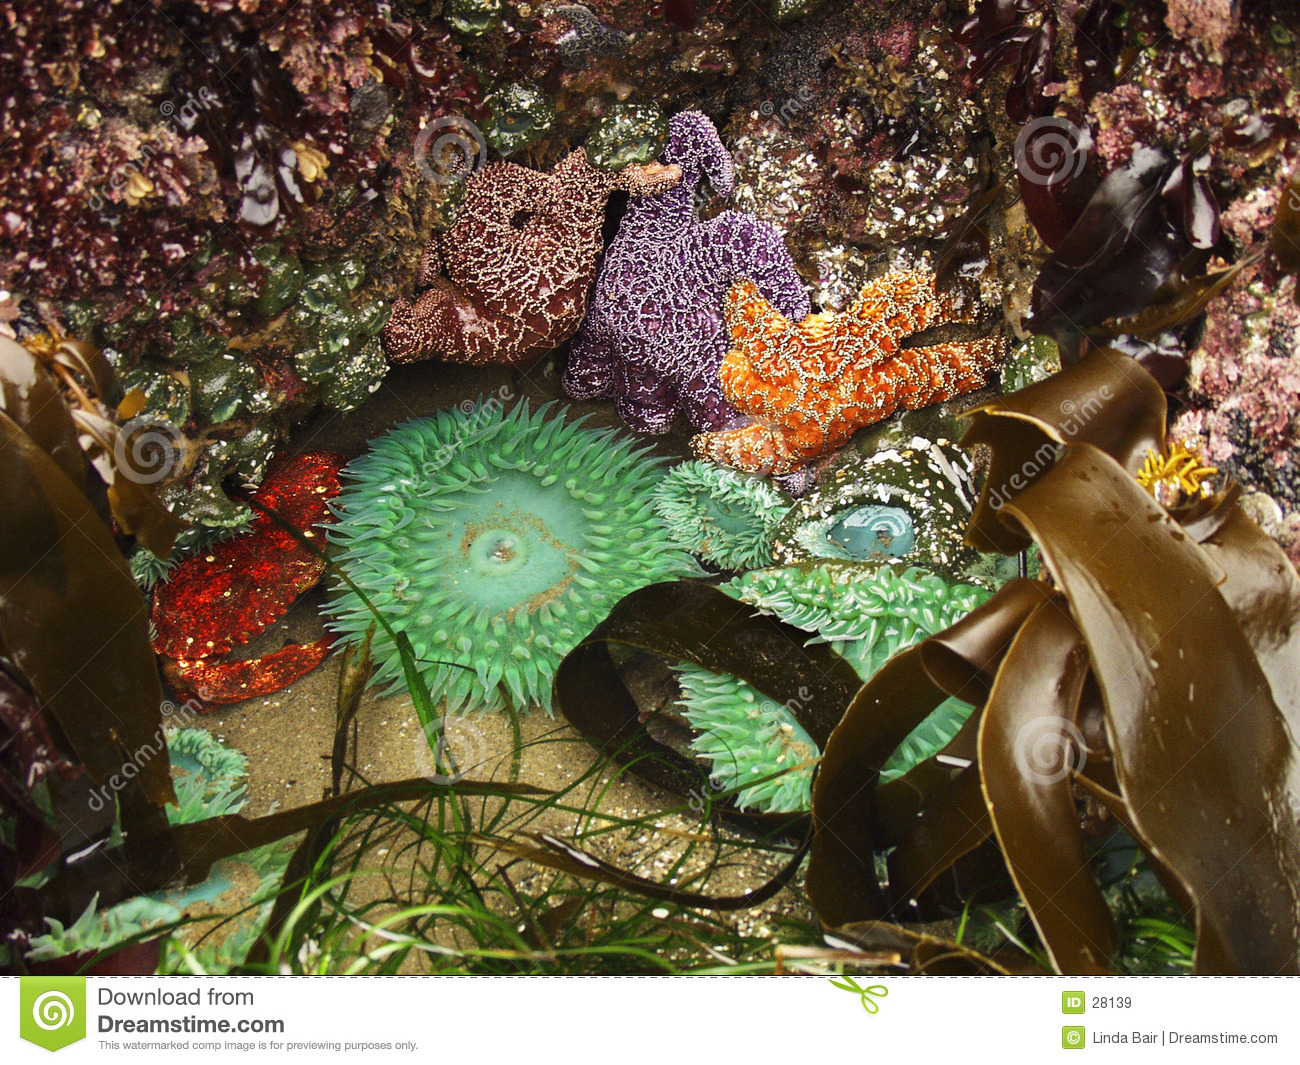 Tide pool ecosystem stock image image of ironrodart for Ecosystem pool